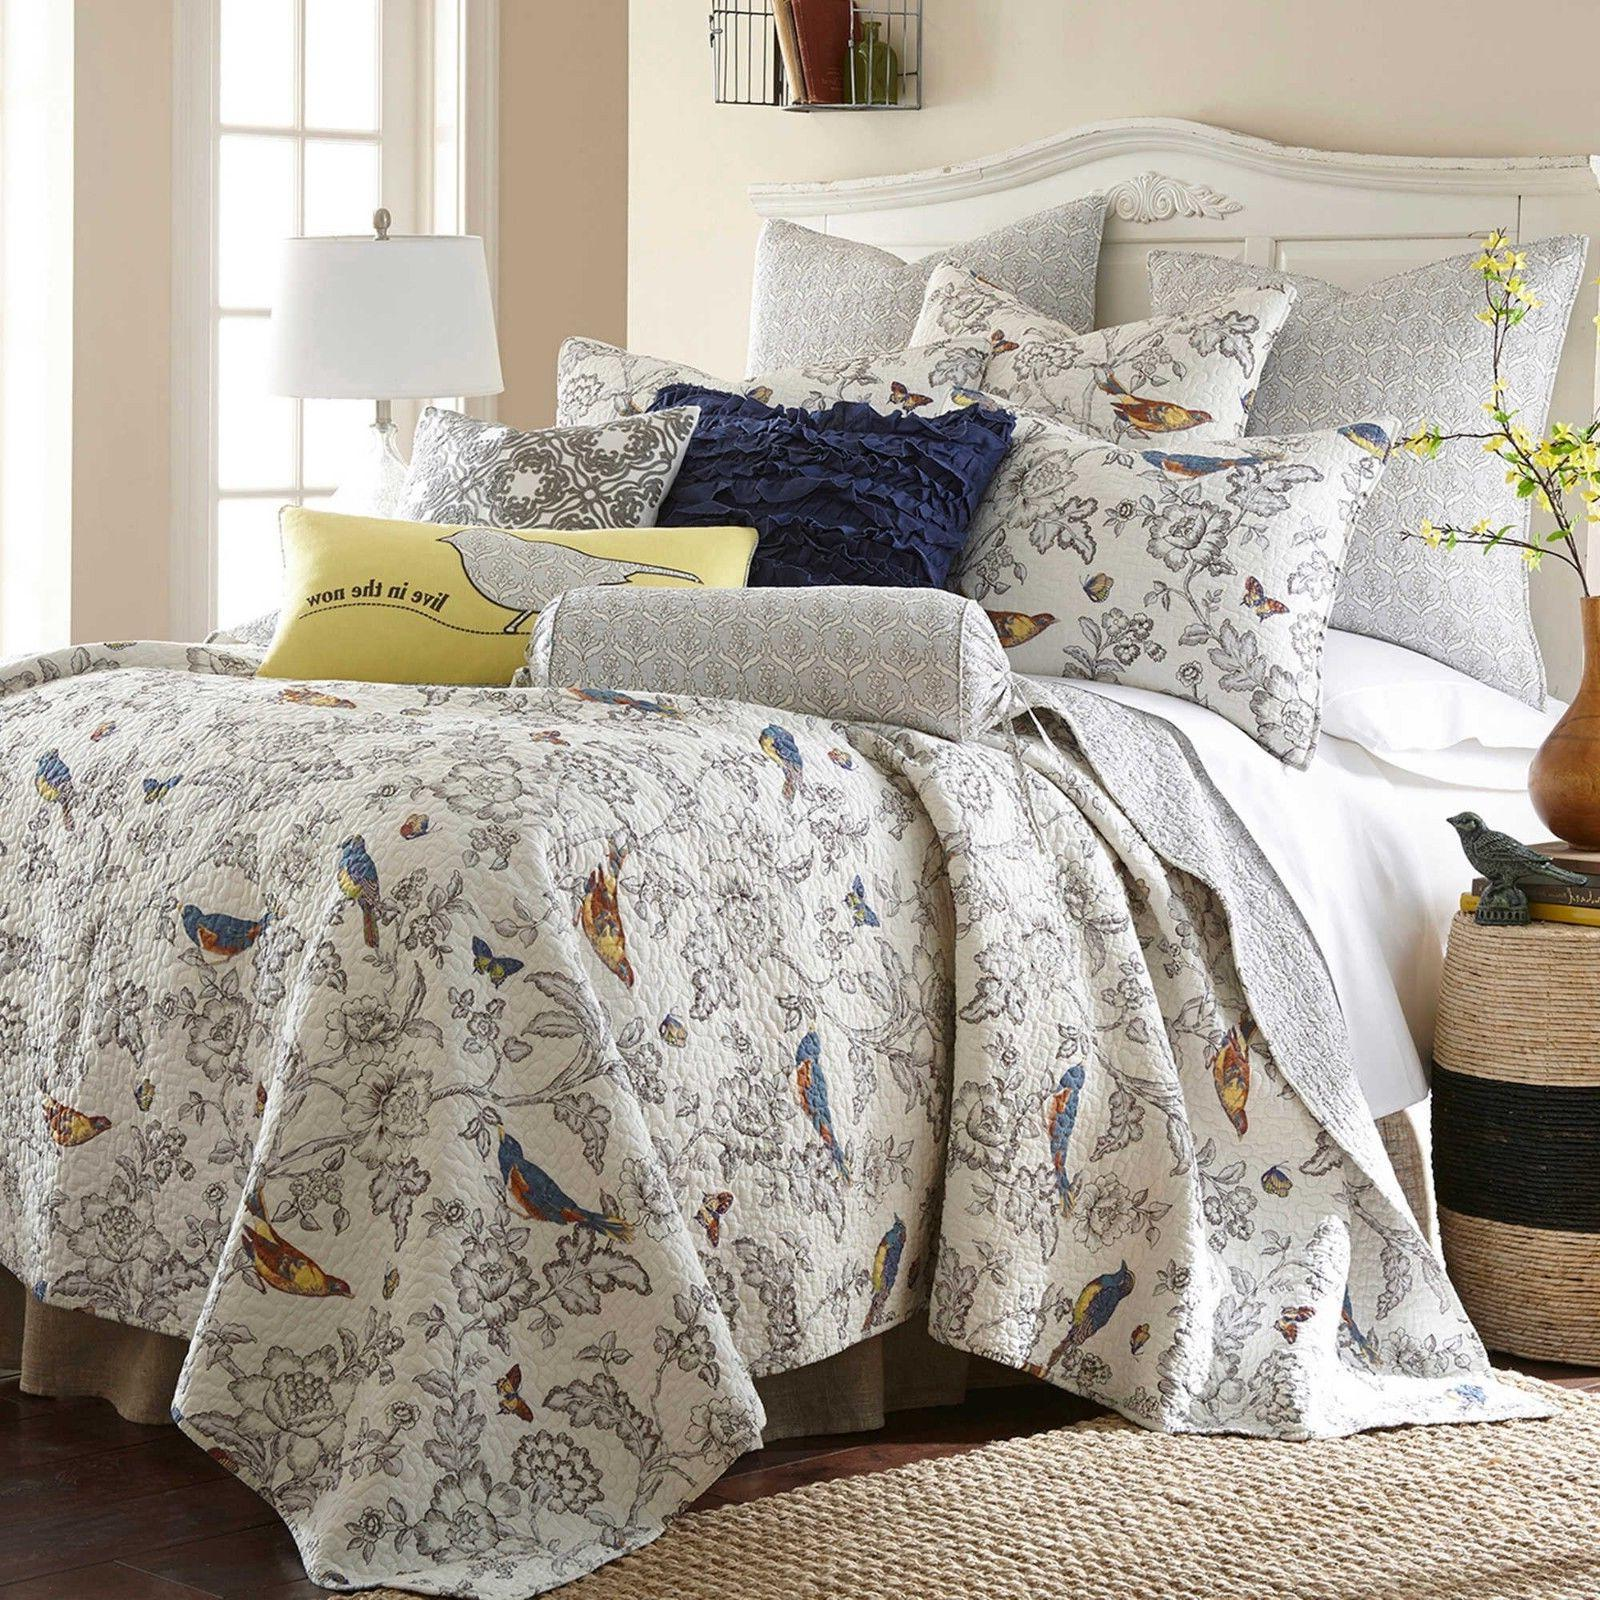 Levtex Home Mockingbird Reversible Quilt Set Grey Full/Queen